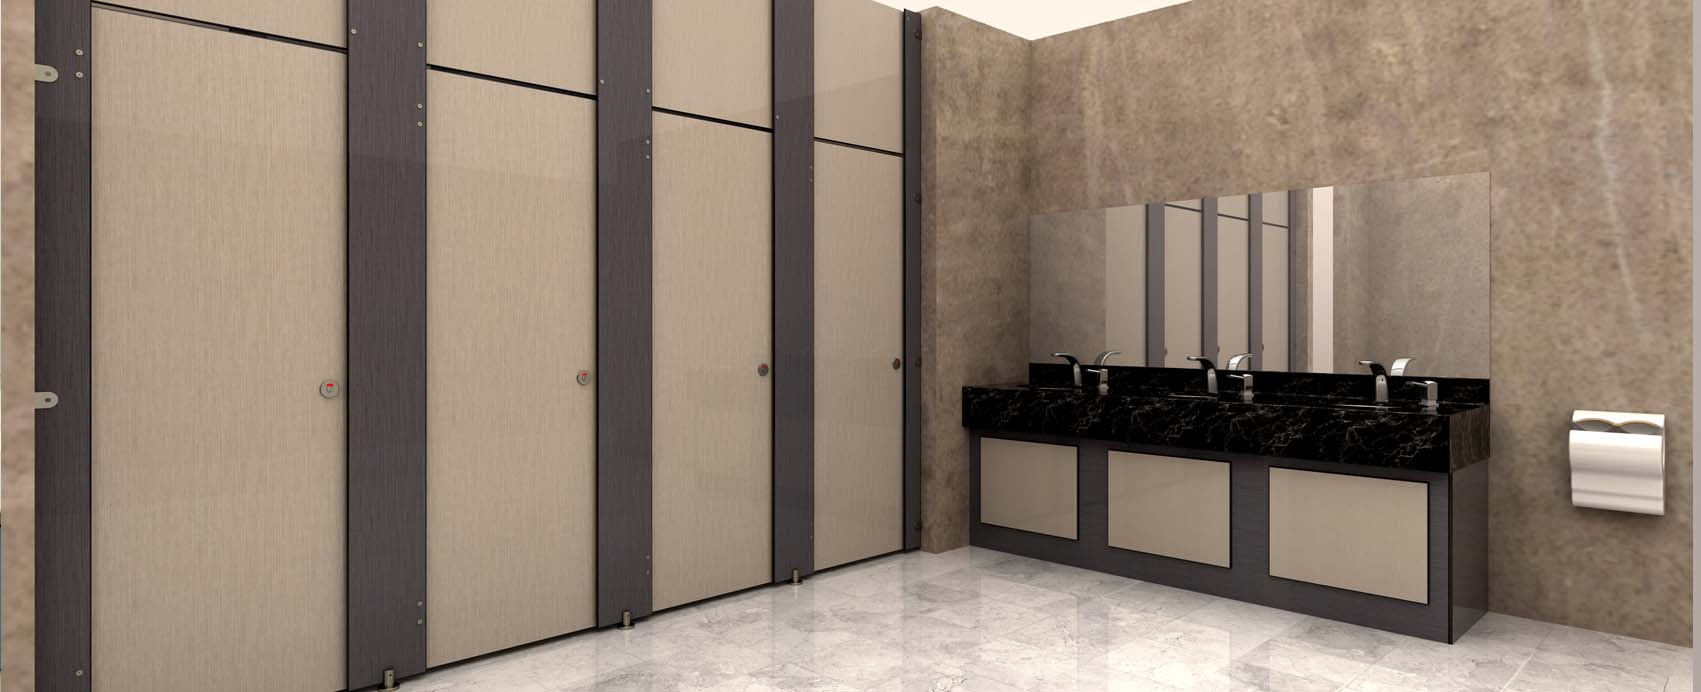 Cubicle Systems Premier Full Height